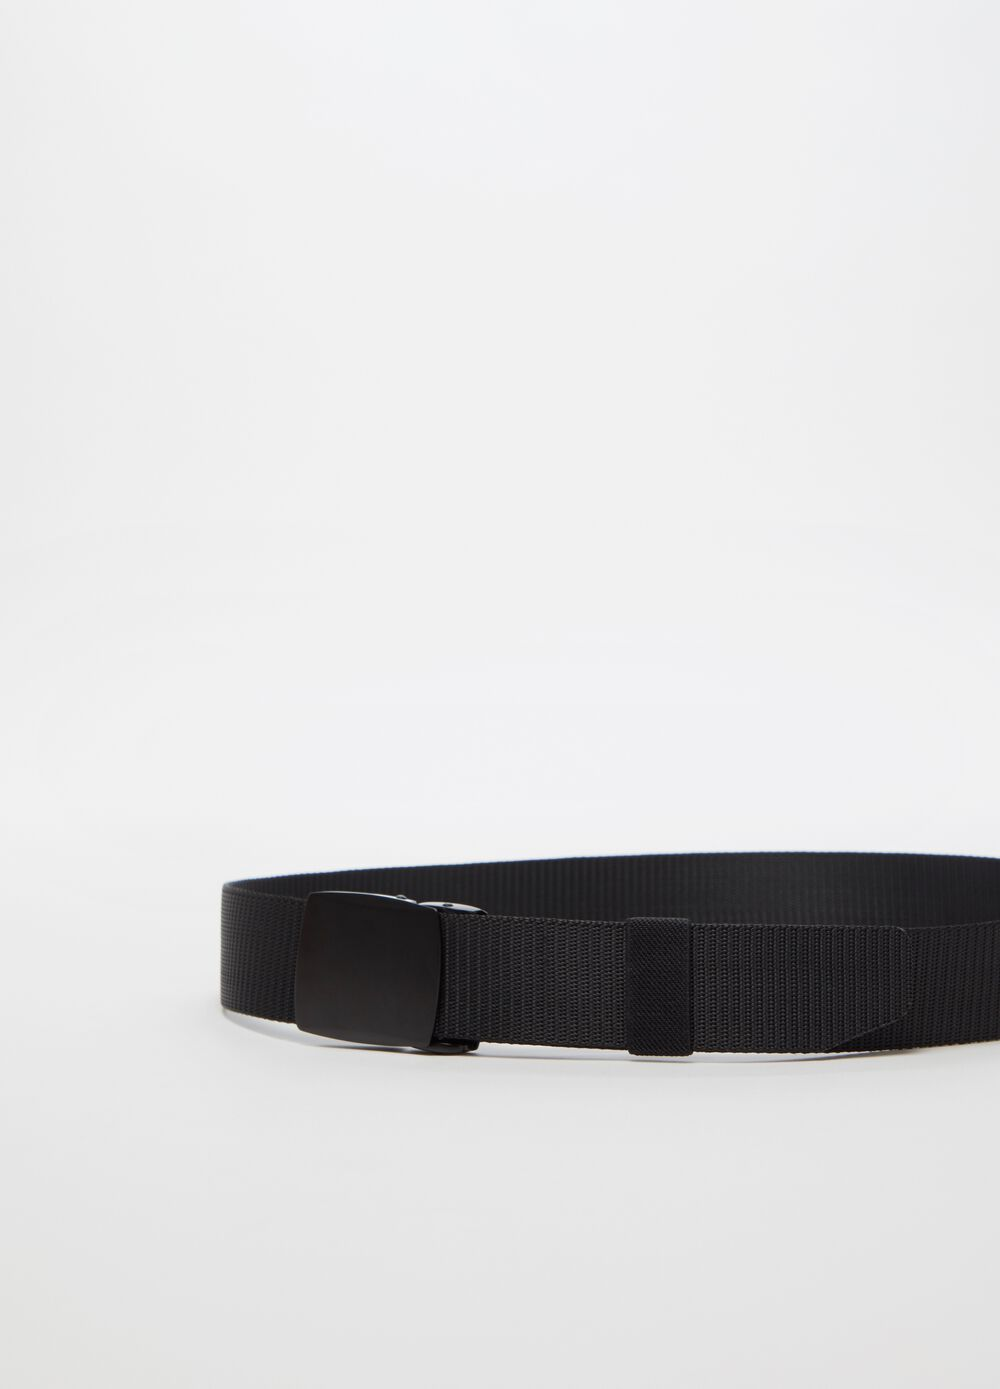 Fabric belt and sliding buckle